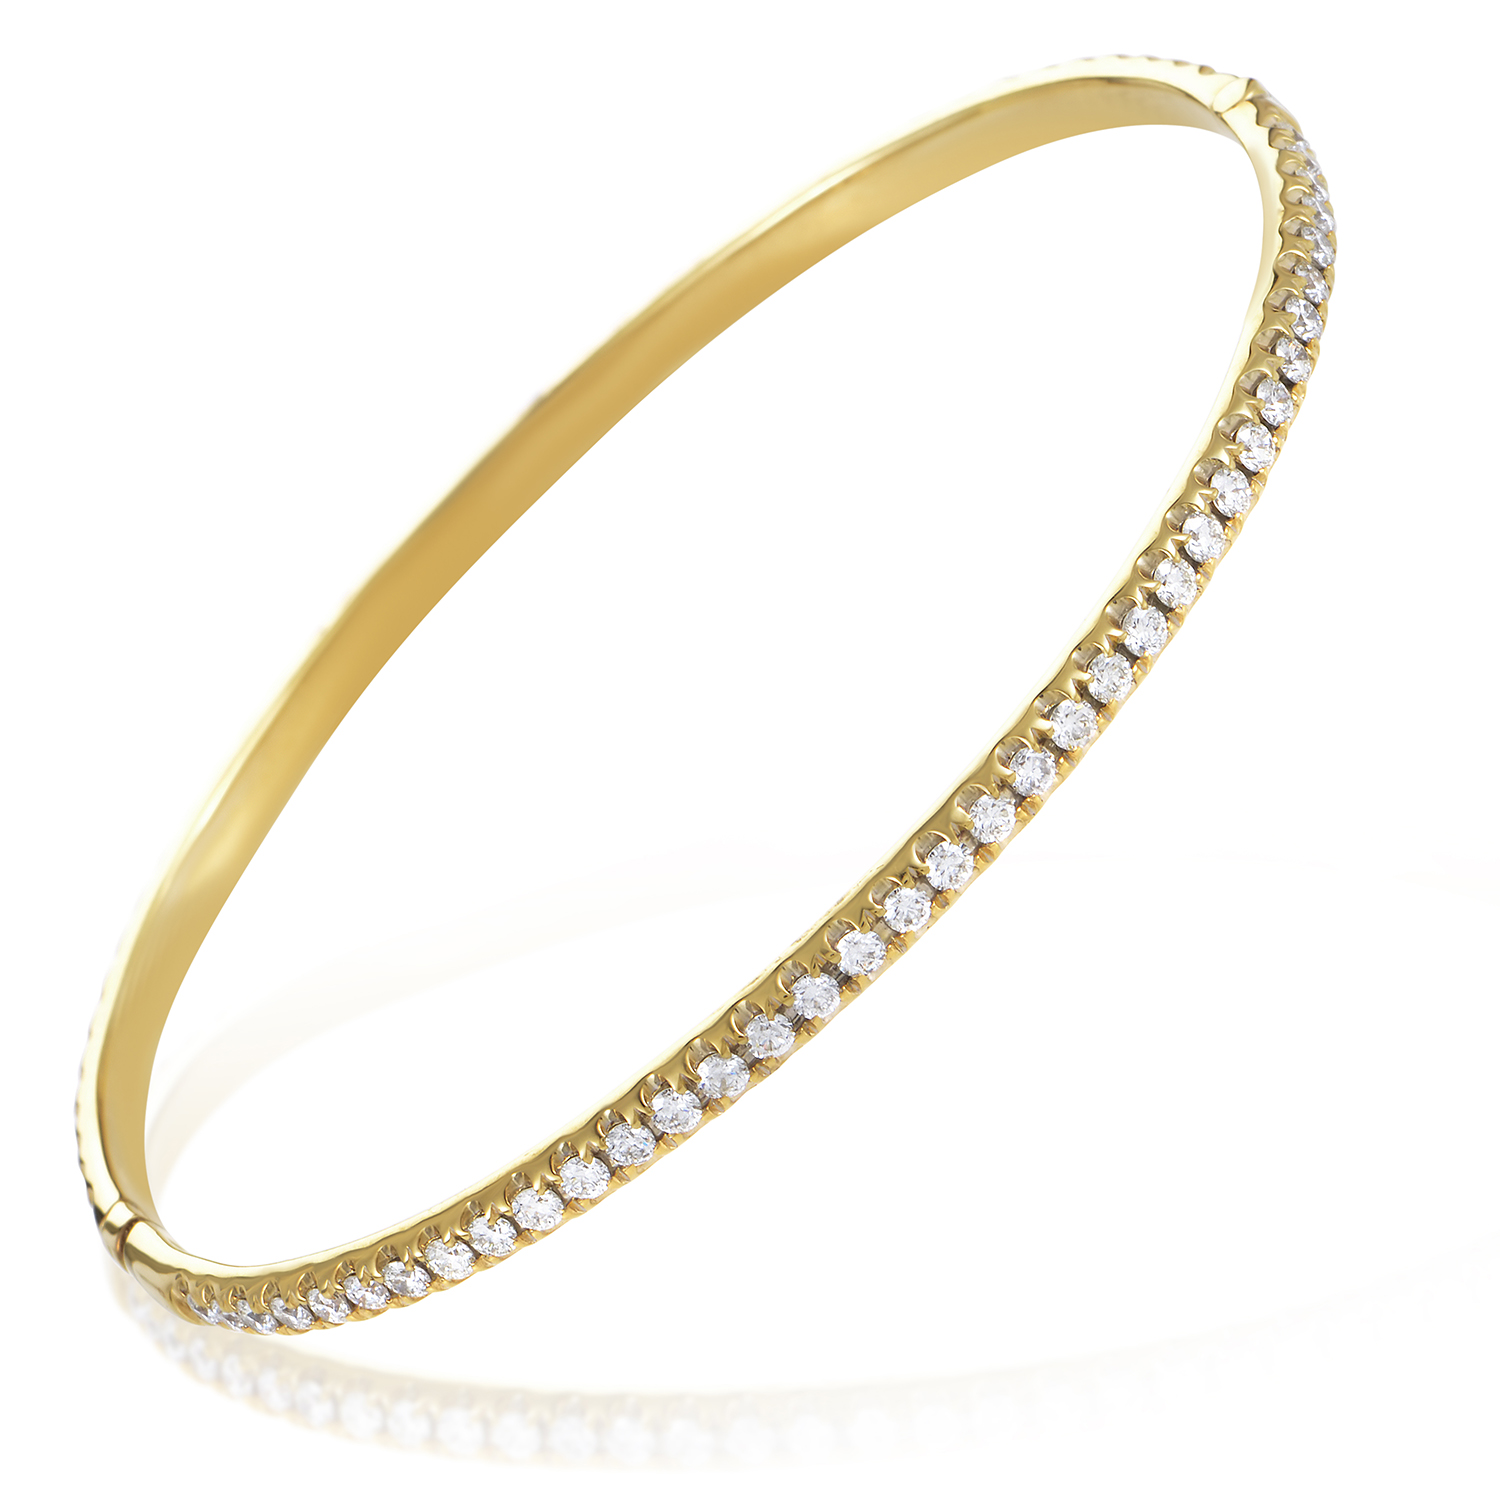 Women's 18K Yellow Gold Diamond Pave Bangle Bracelet ALB-6696Y